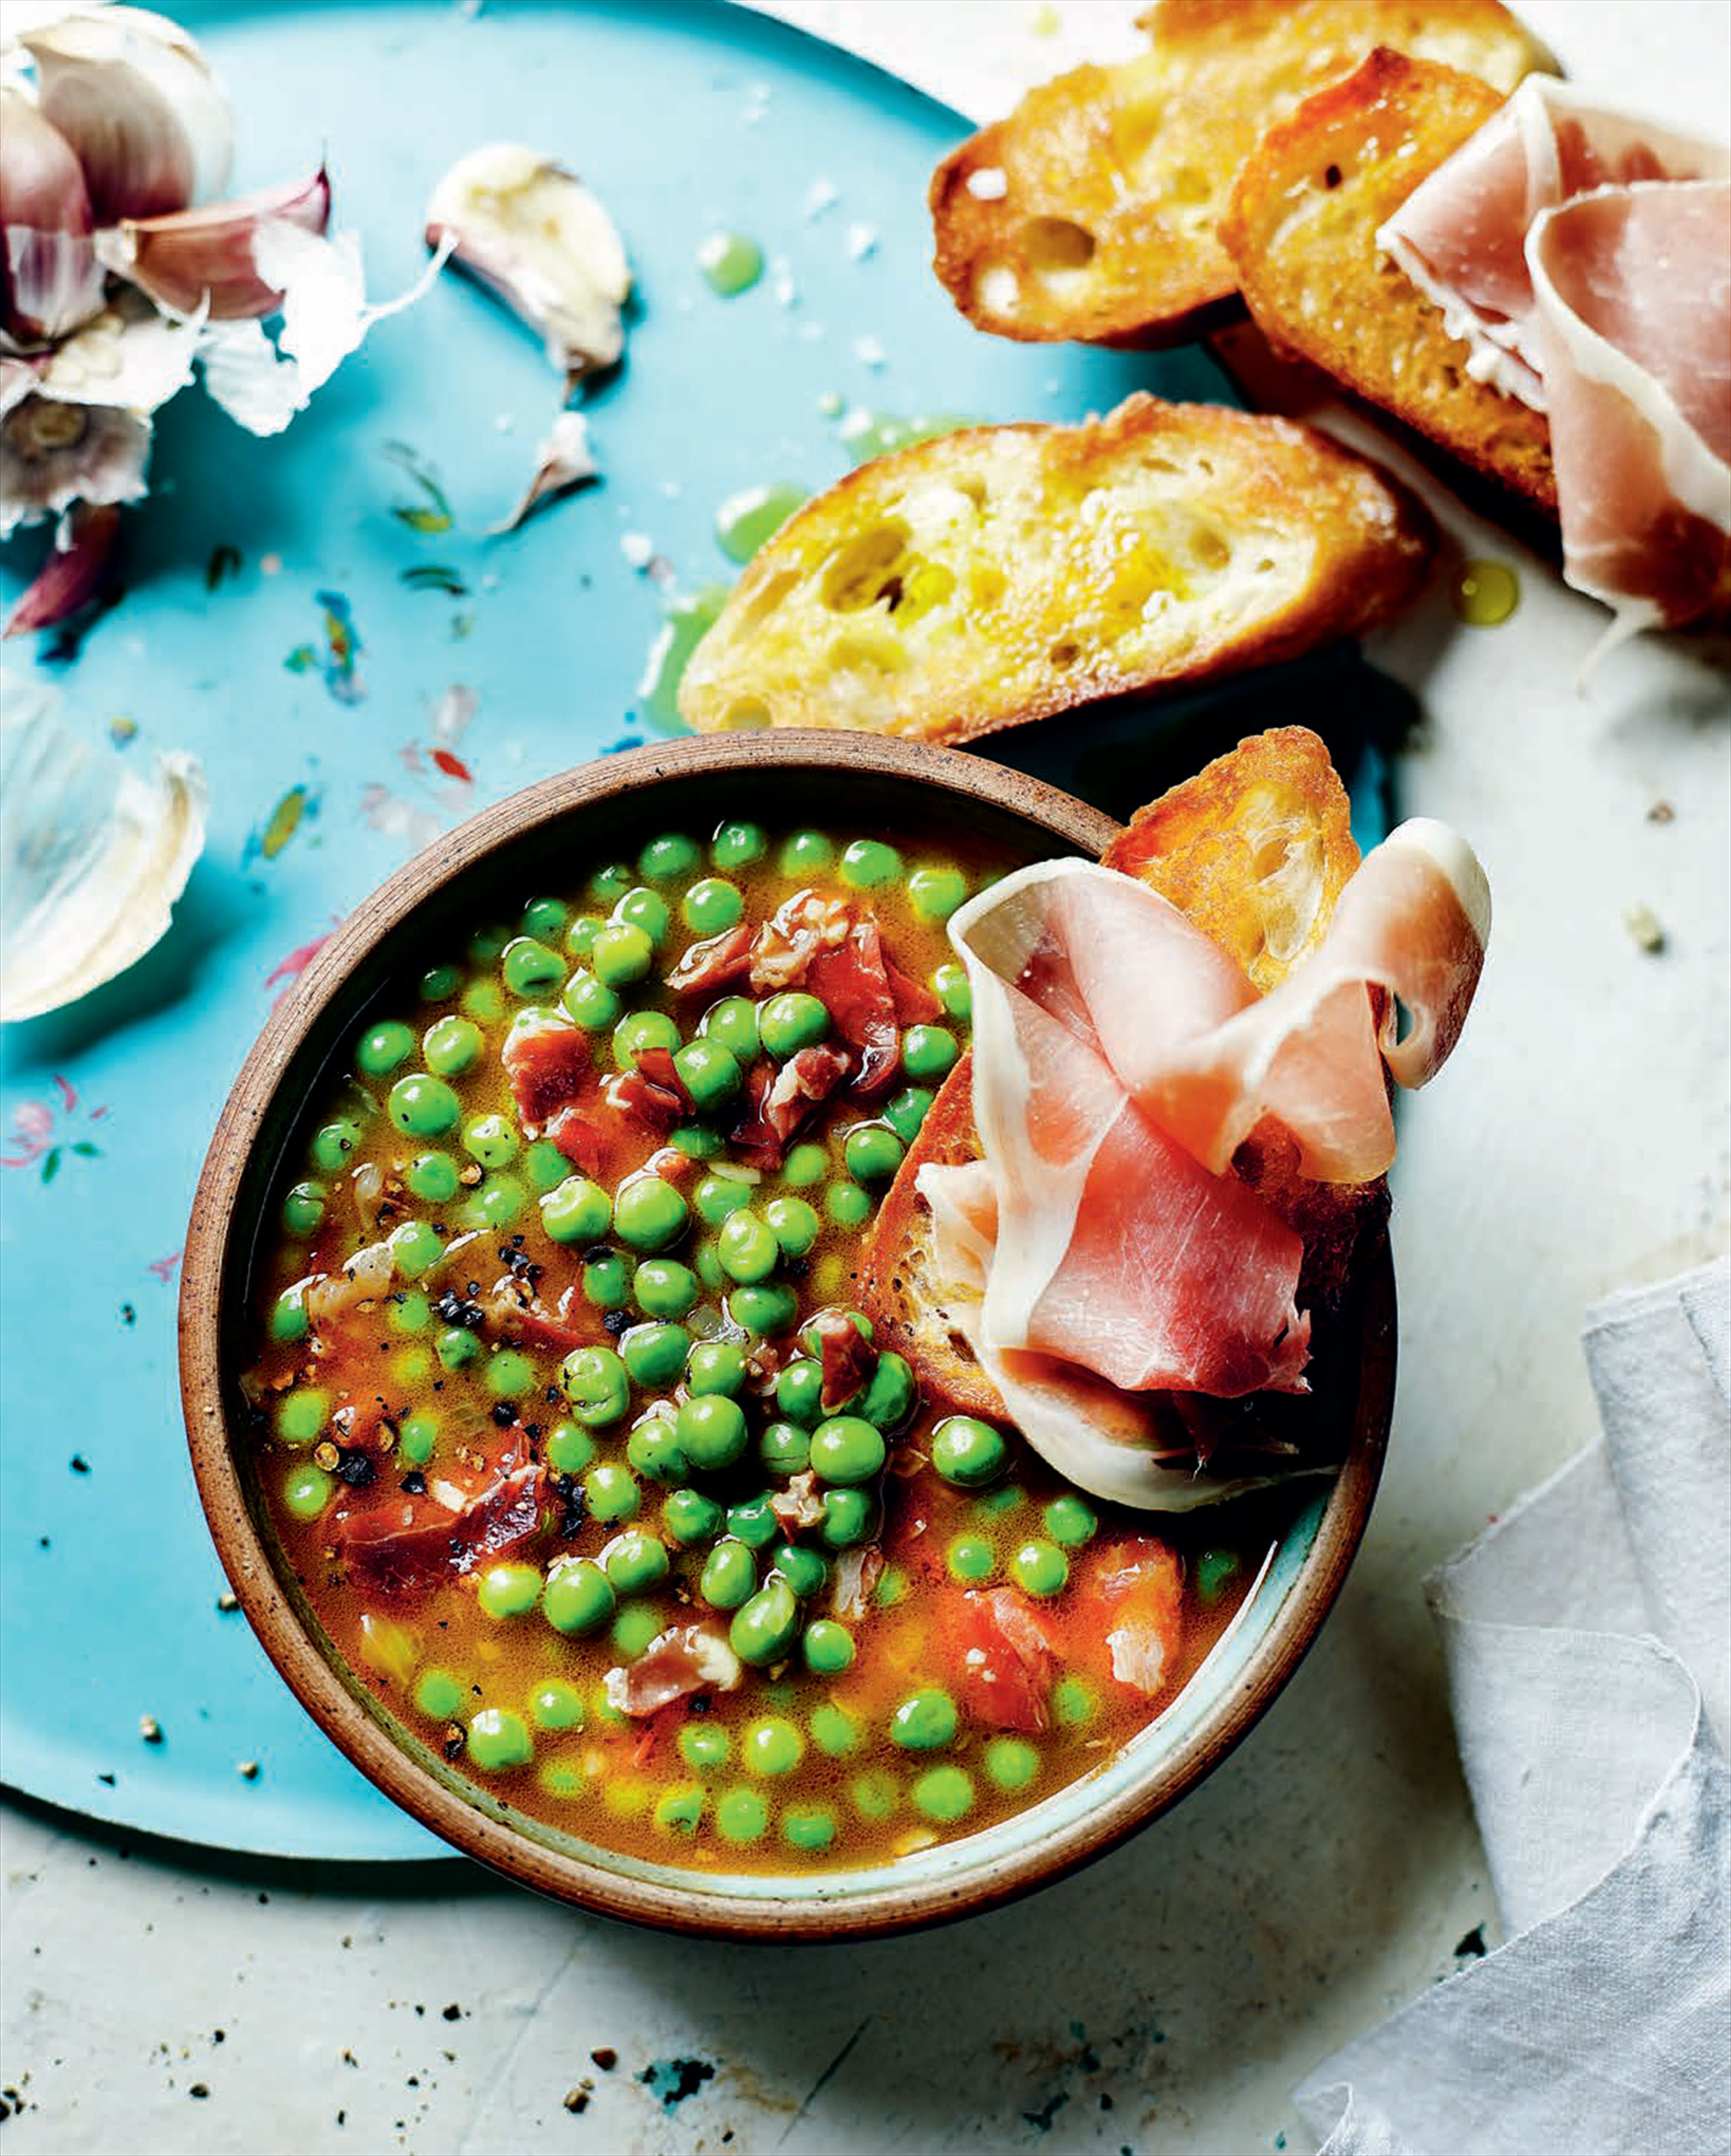 Pea soup with serrano ham